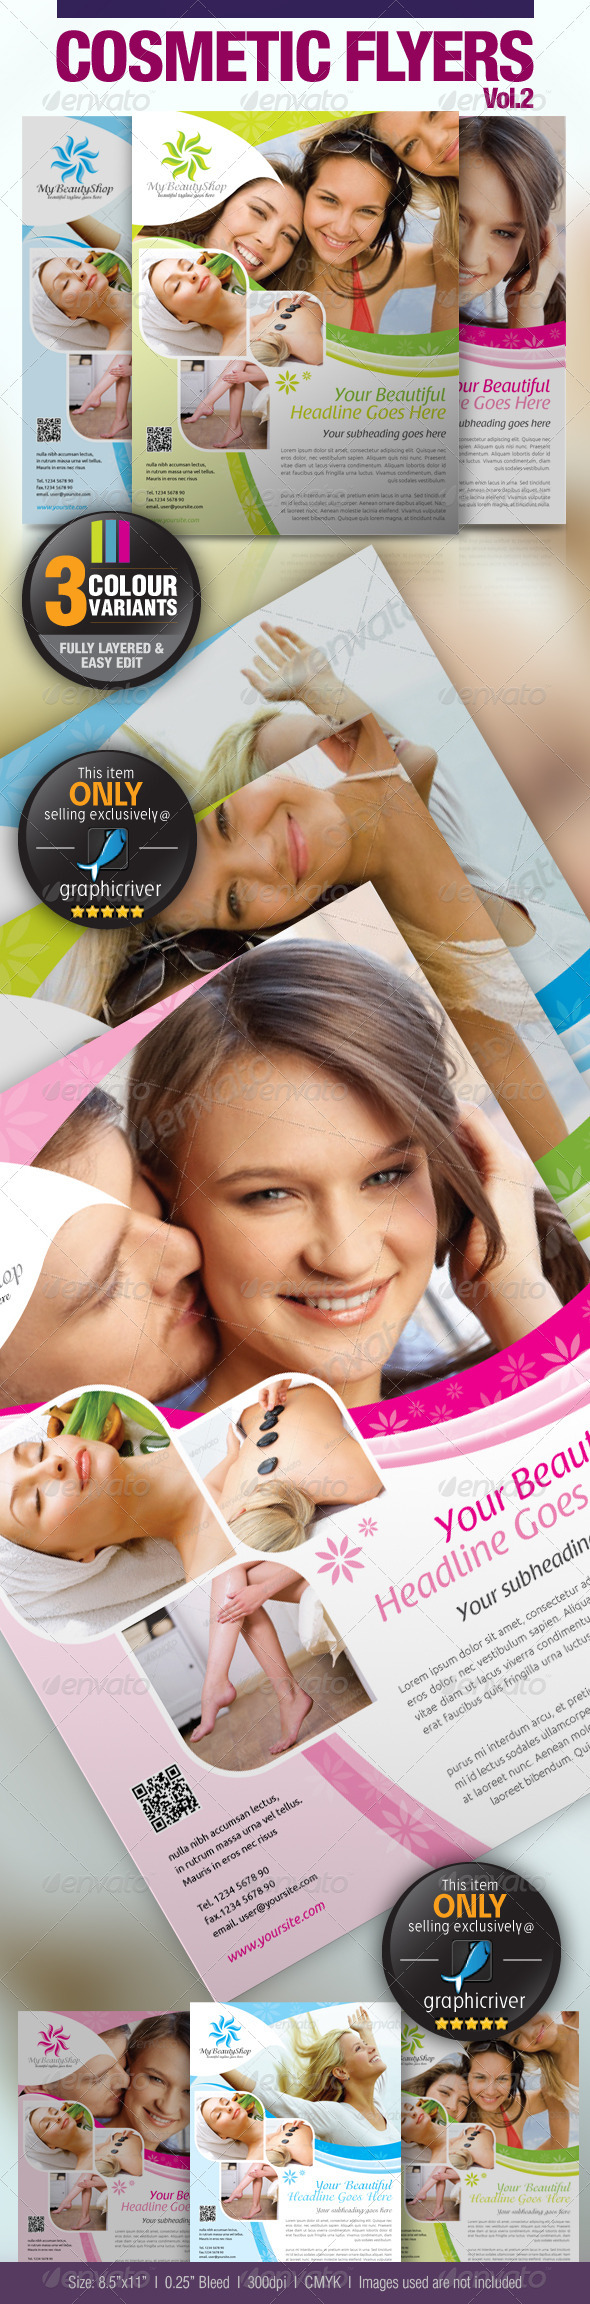 GraphicRiver Cosmetic Flyer Vol.2 2634492